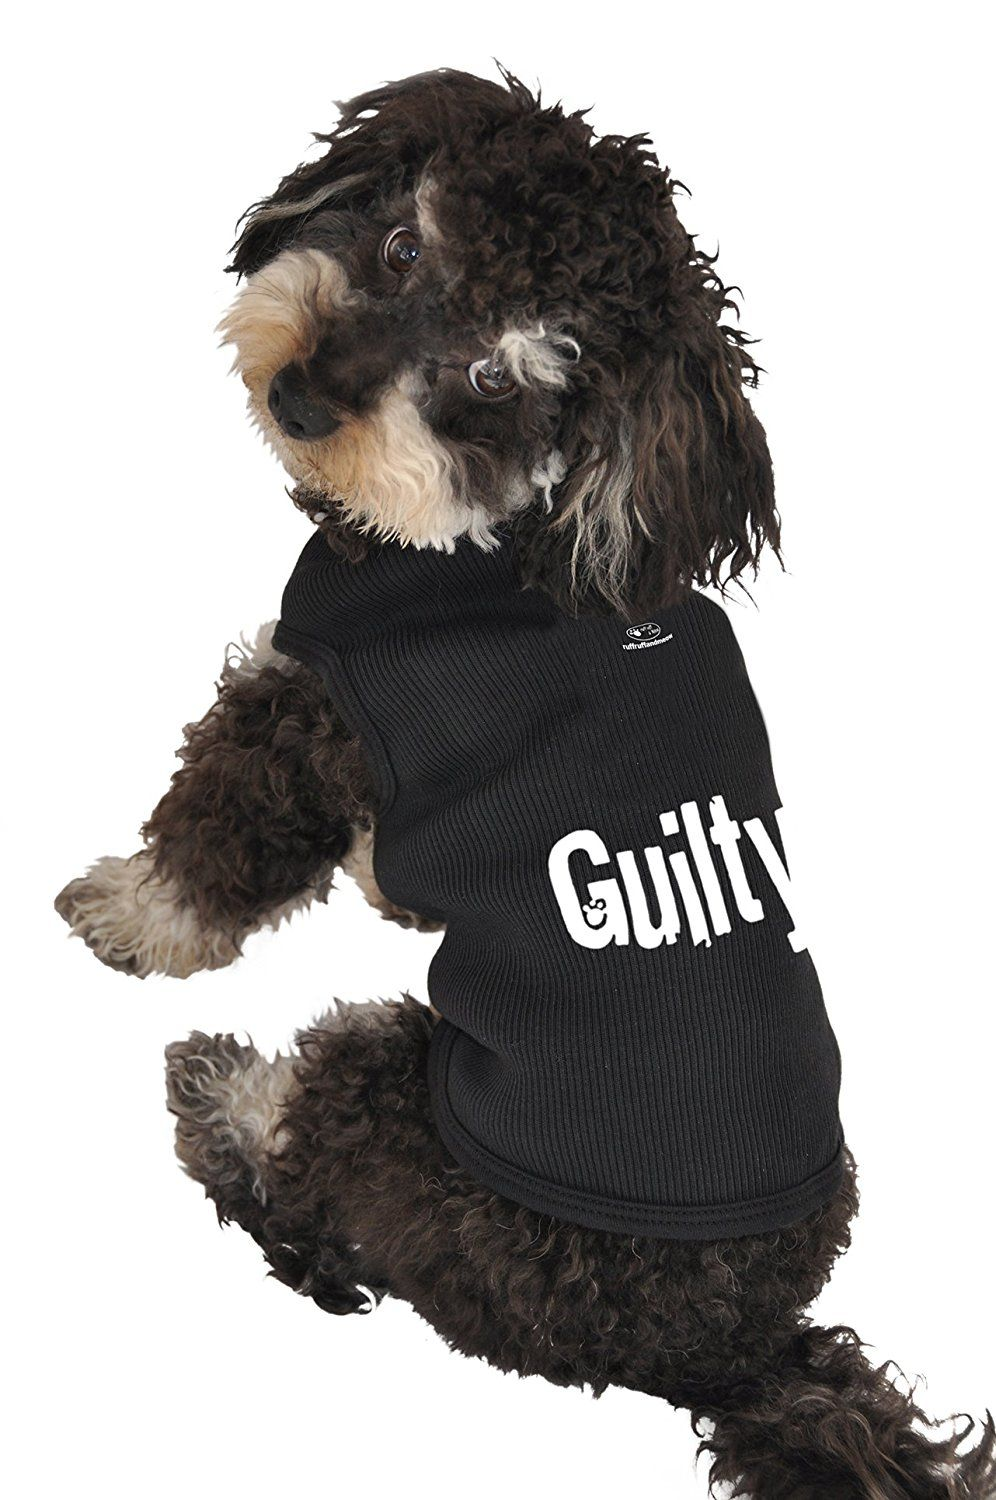 Ruff Ruff and Meow Dog Tank Top, Guilty, Black, Extra